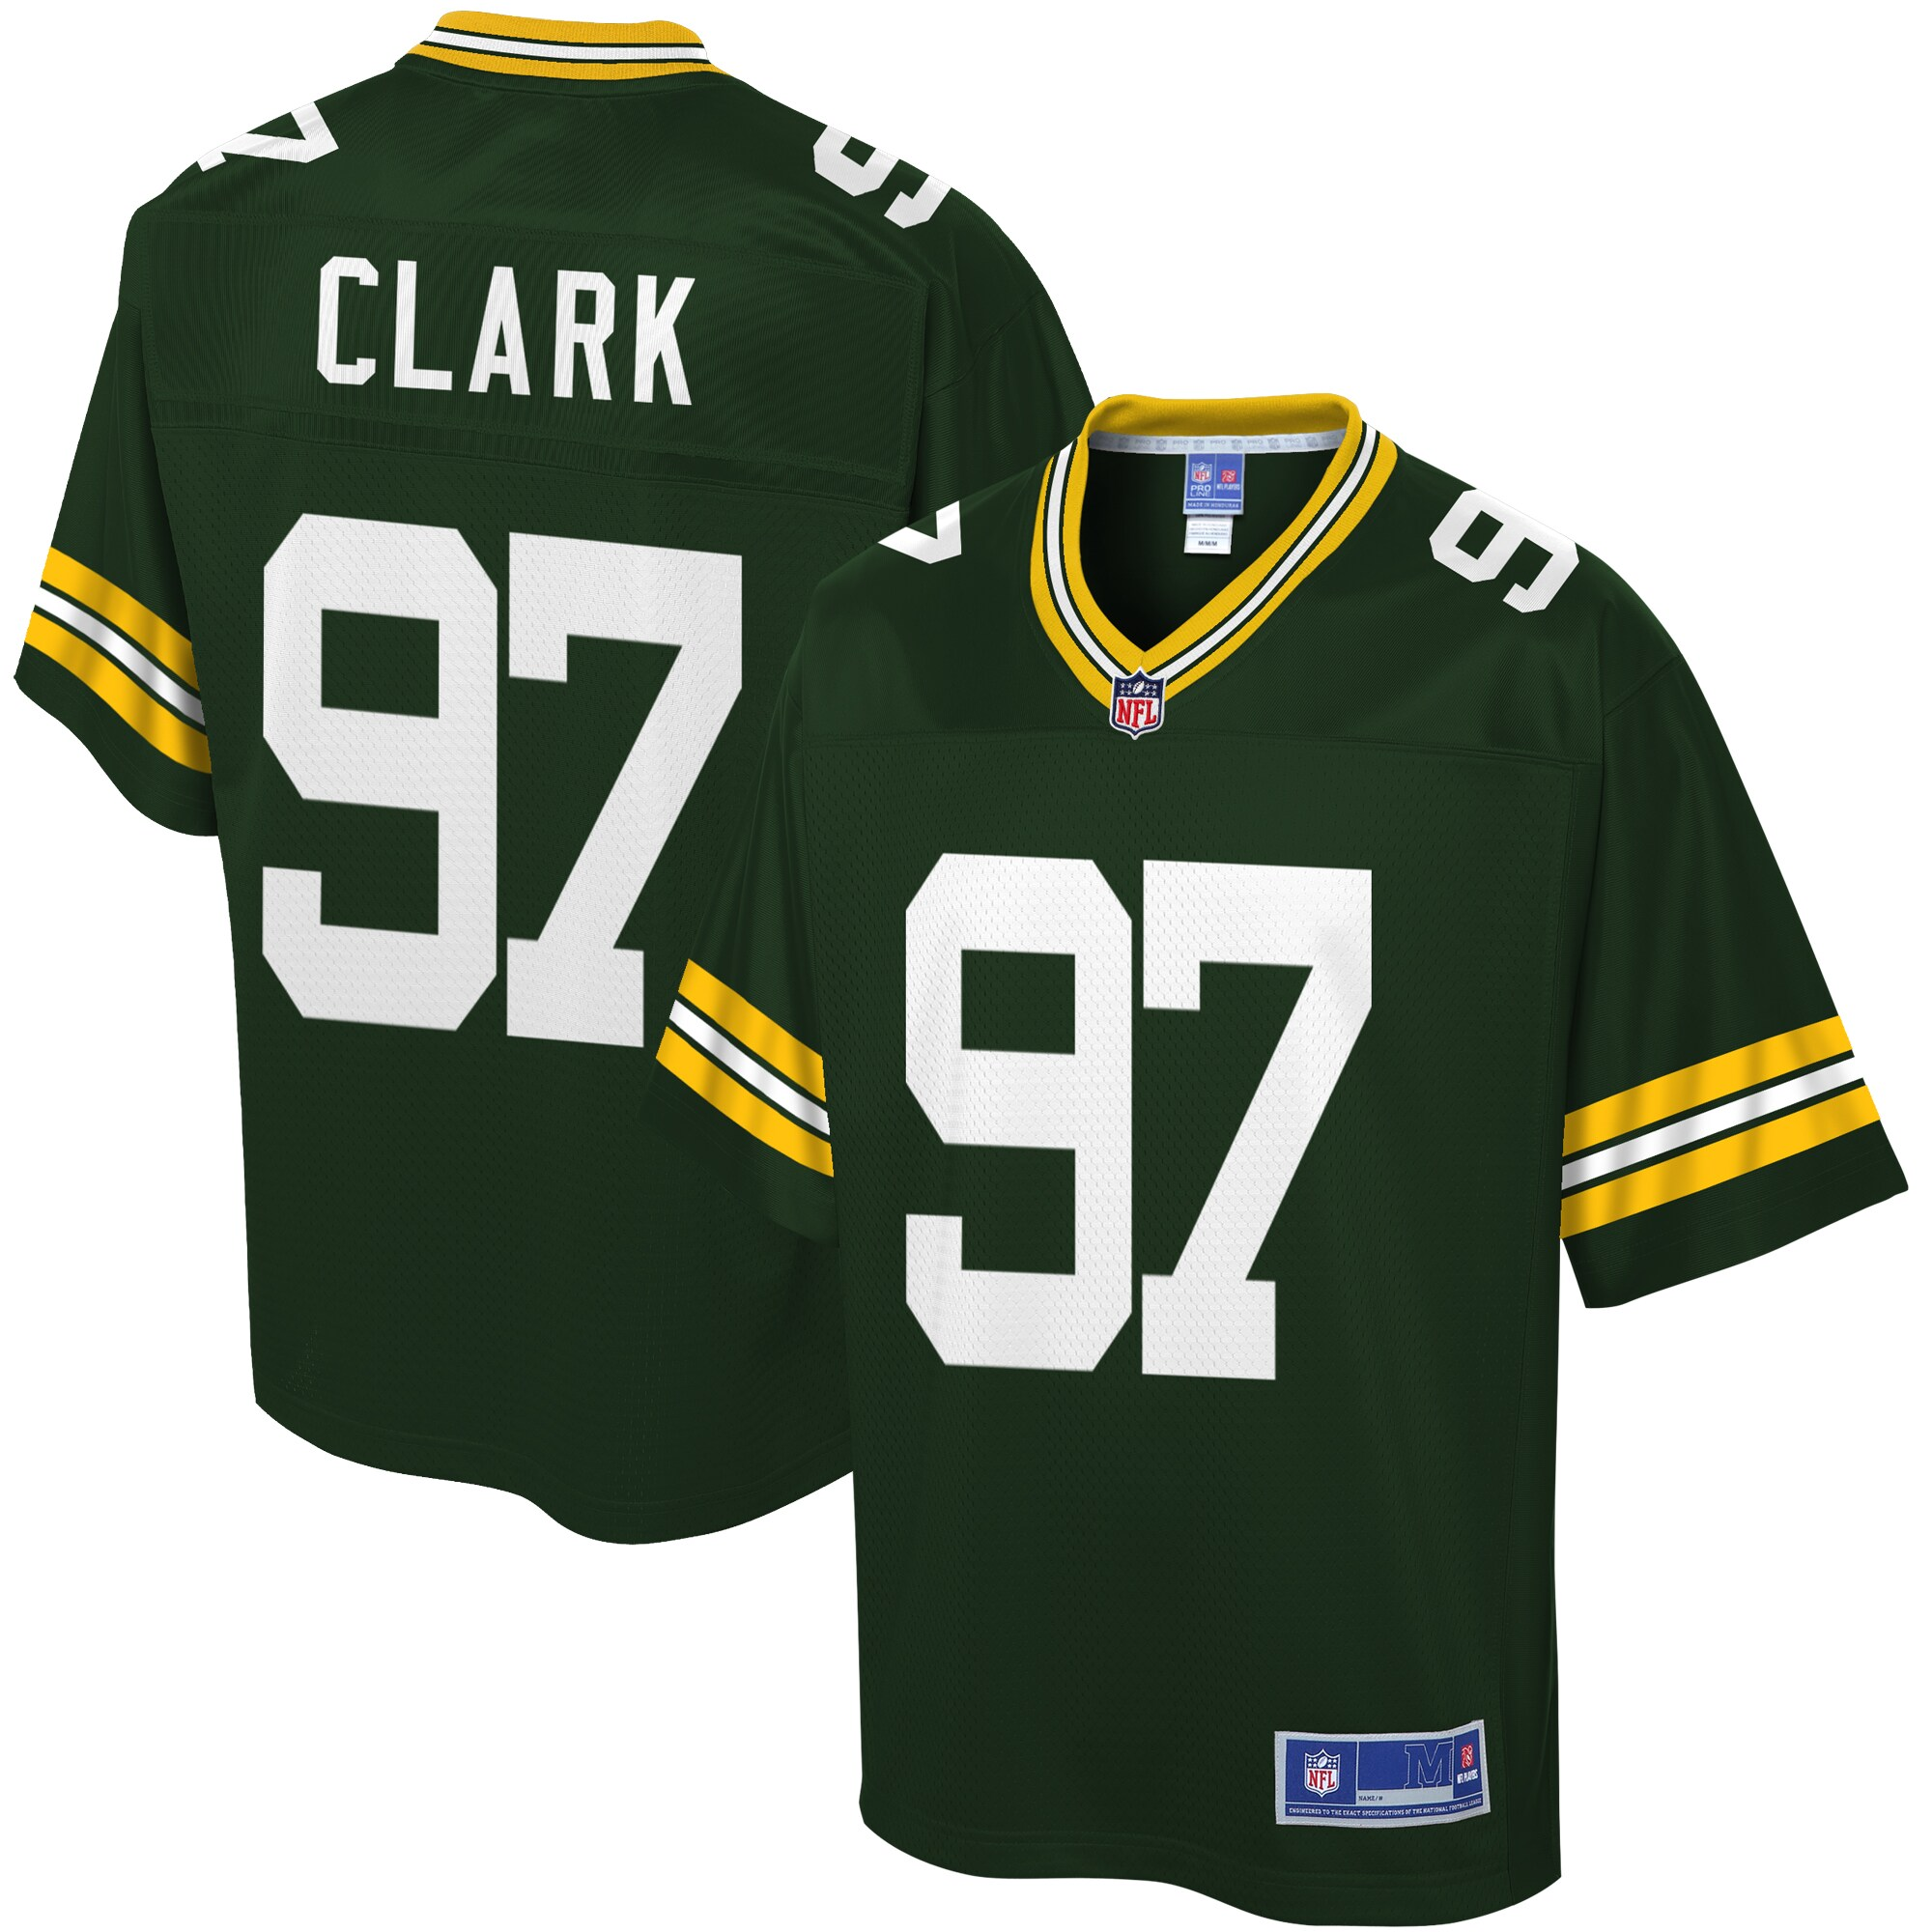 Kenny Clark Green Bay Packers NFL Pro Line Player Jersey - Green